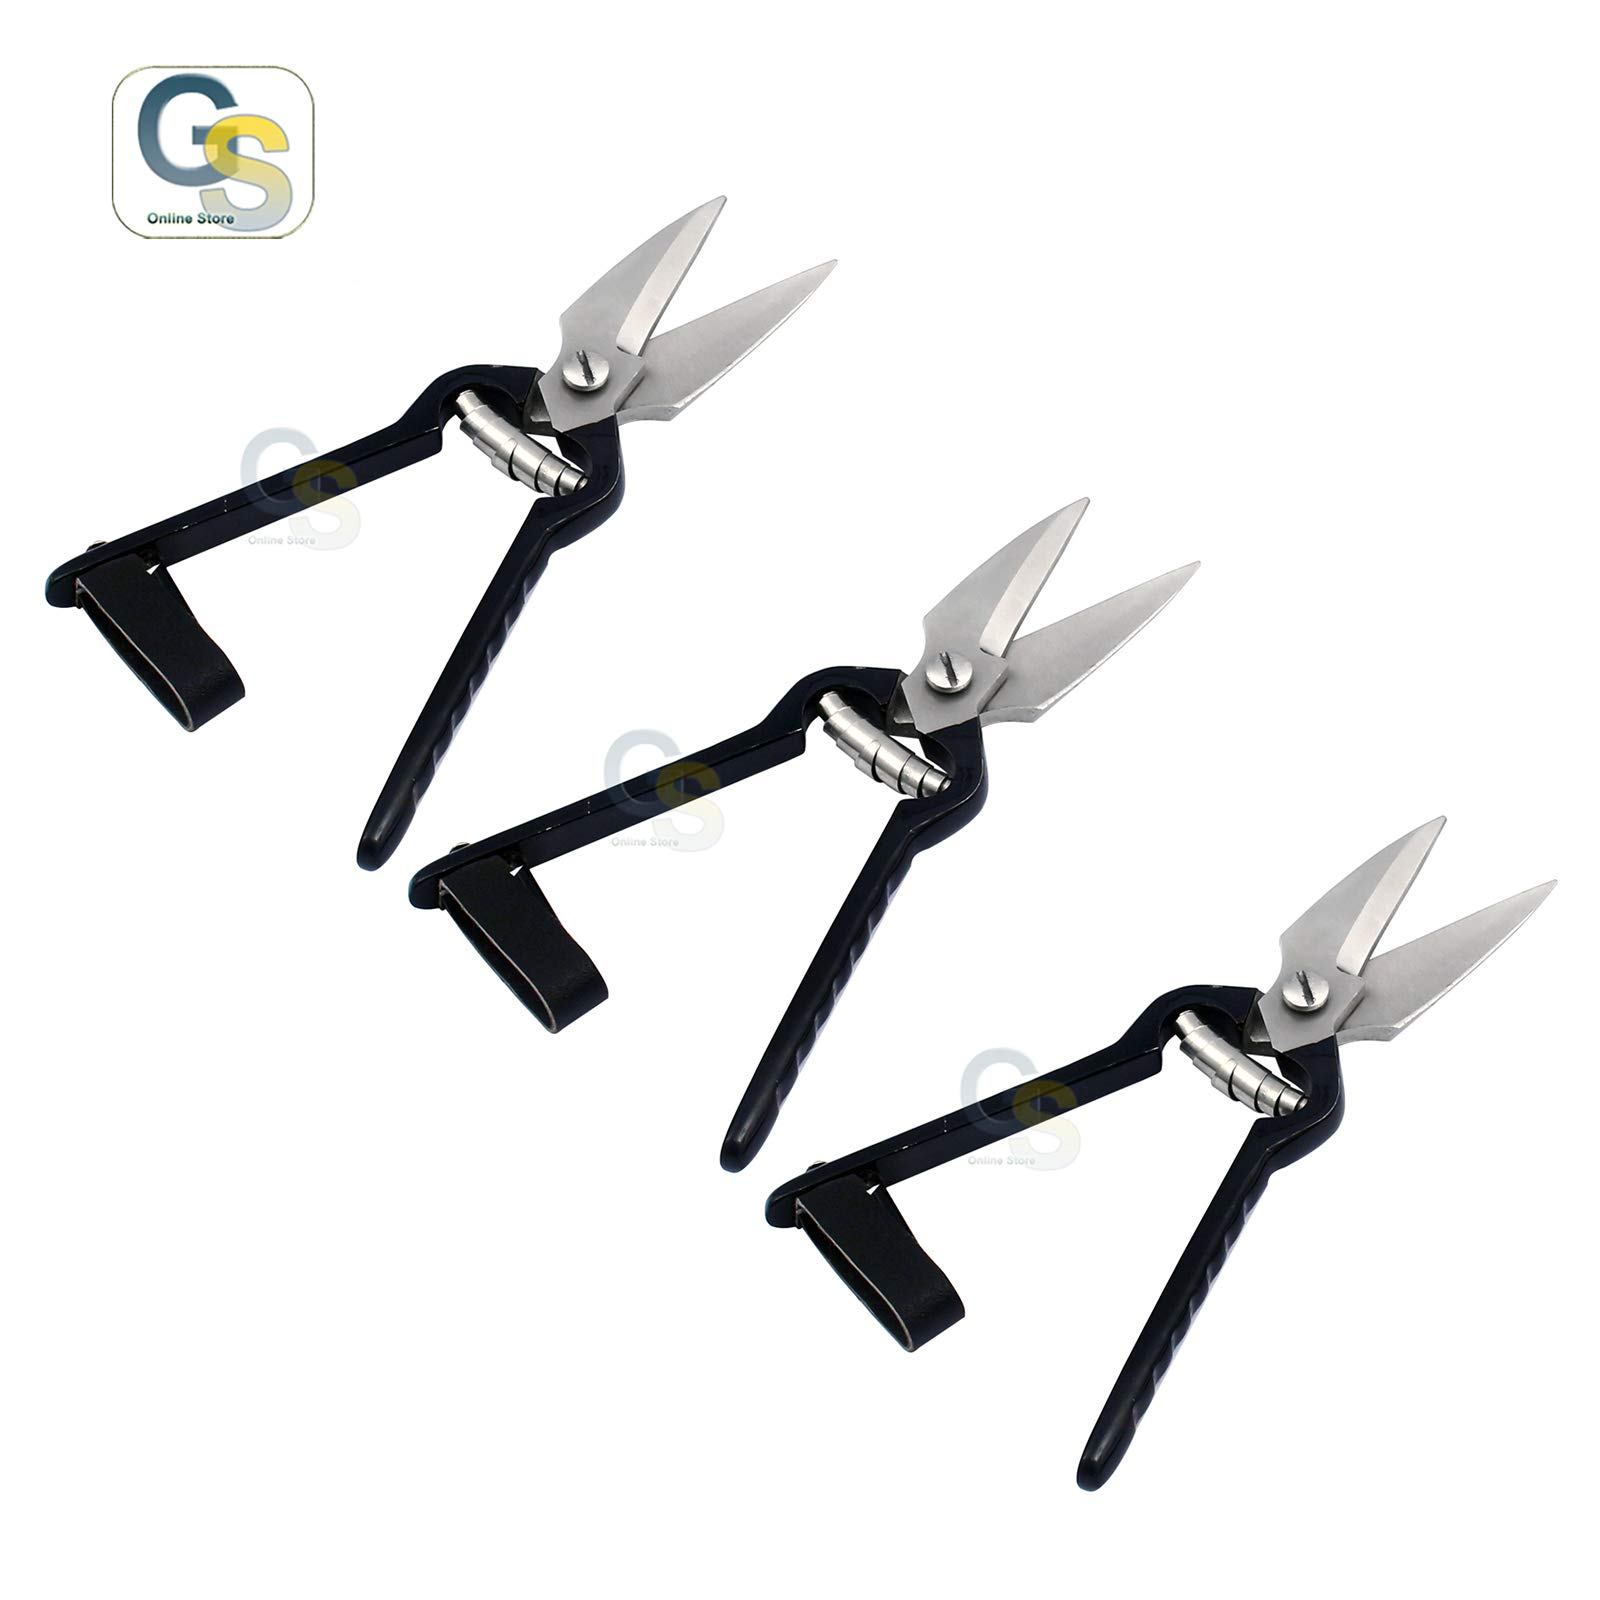 G.S Set of 3 Pcs Goat and Sheep Hoof Trimmers 9'' Stainless Steel Trimming Shears Multi-Purpose Pruning Shears 2.5'' Blade Best Quality